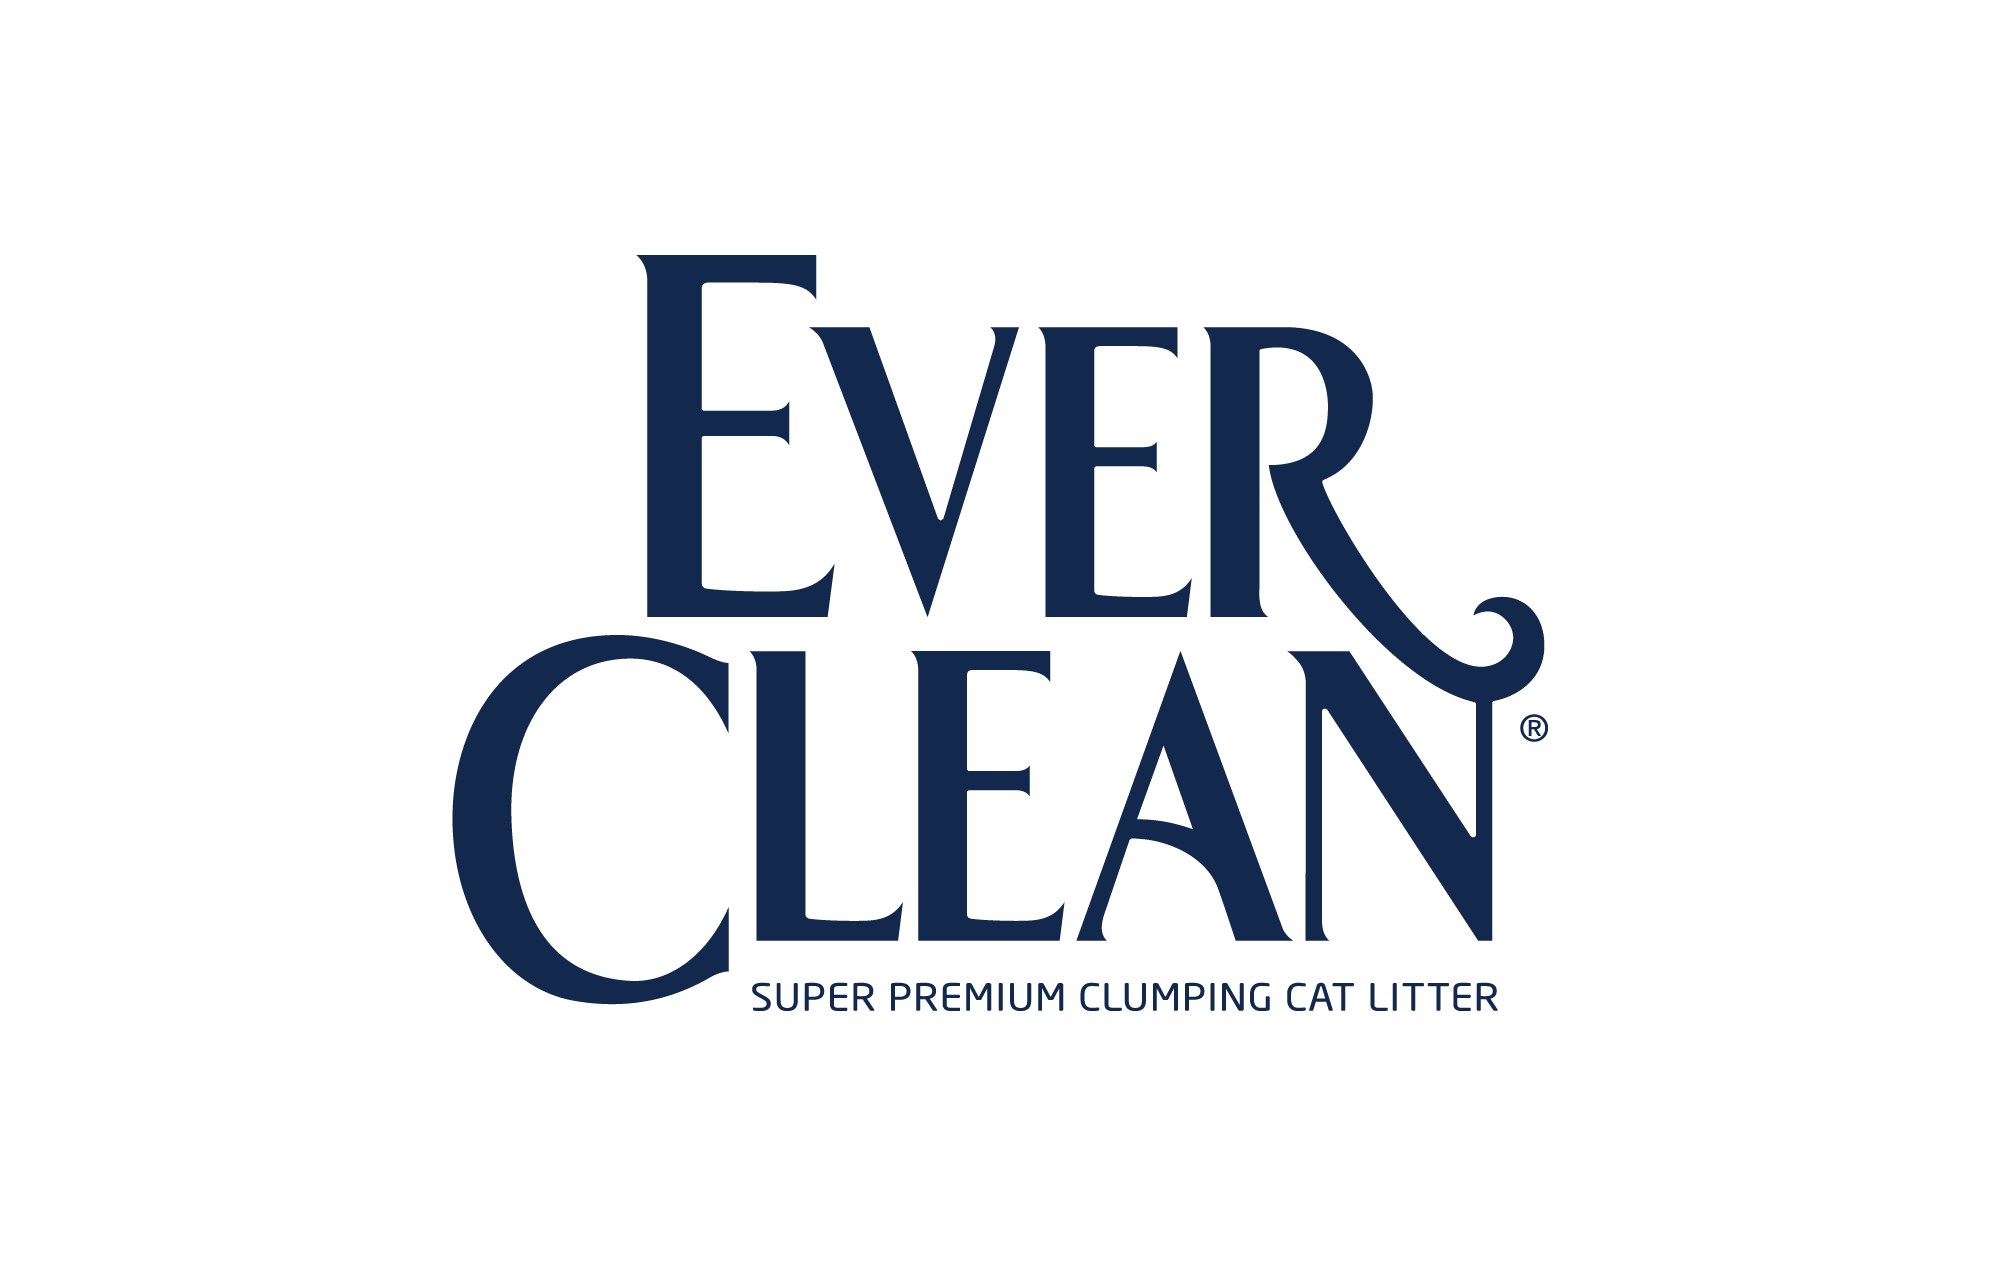 Blue Ever clean logo